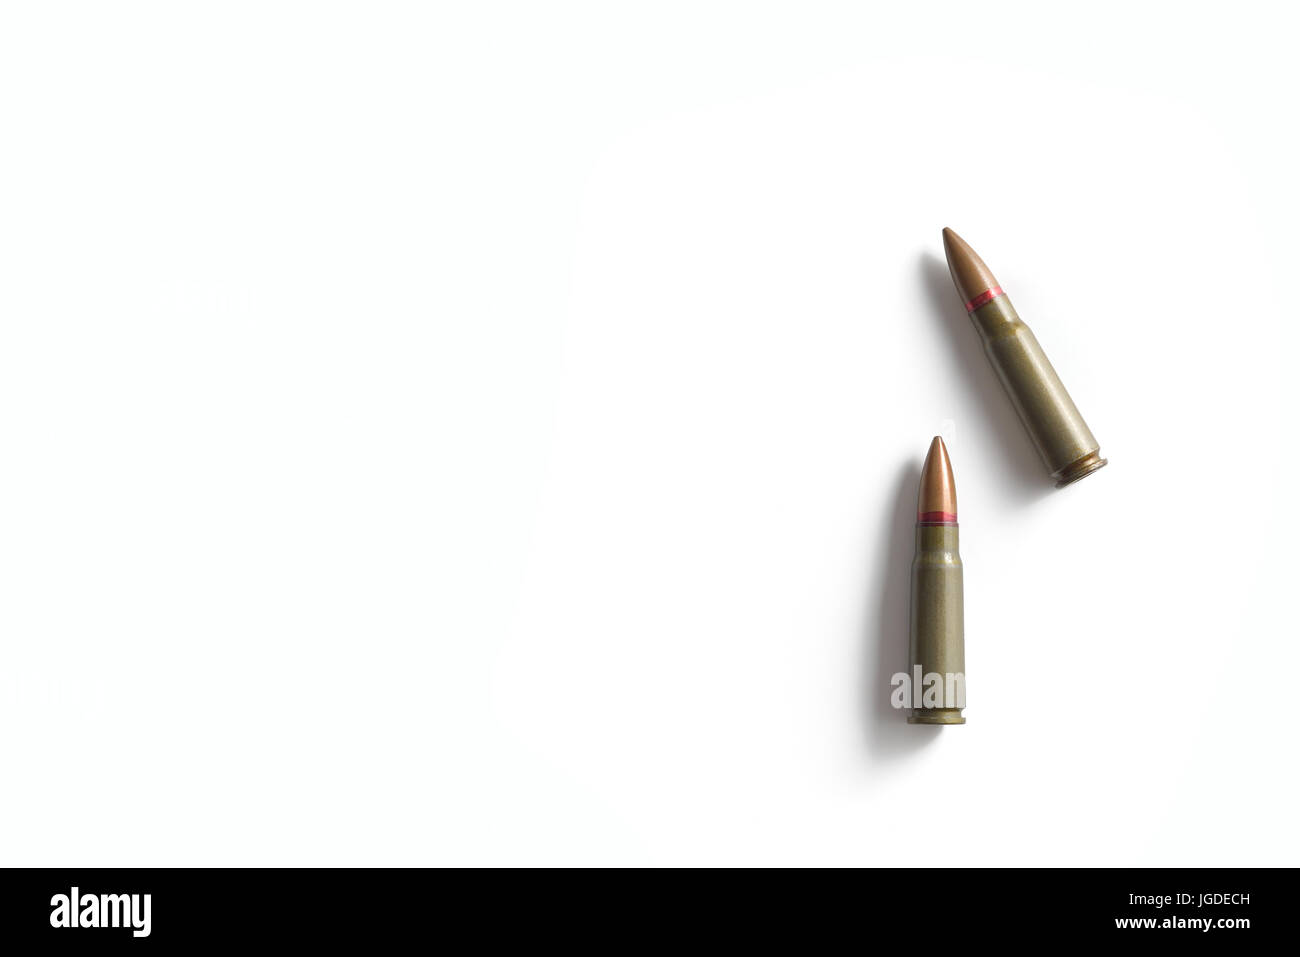 Two rifle bullets isolated on a white background. Military ammunition - Stock Image